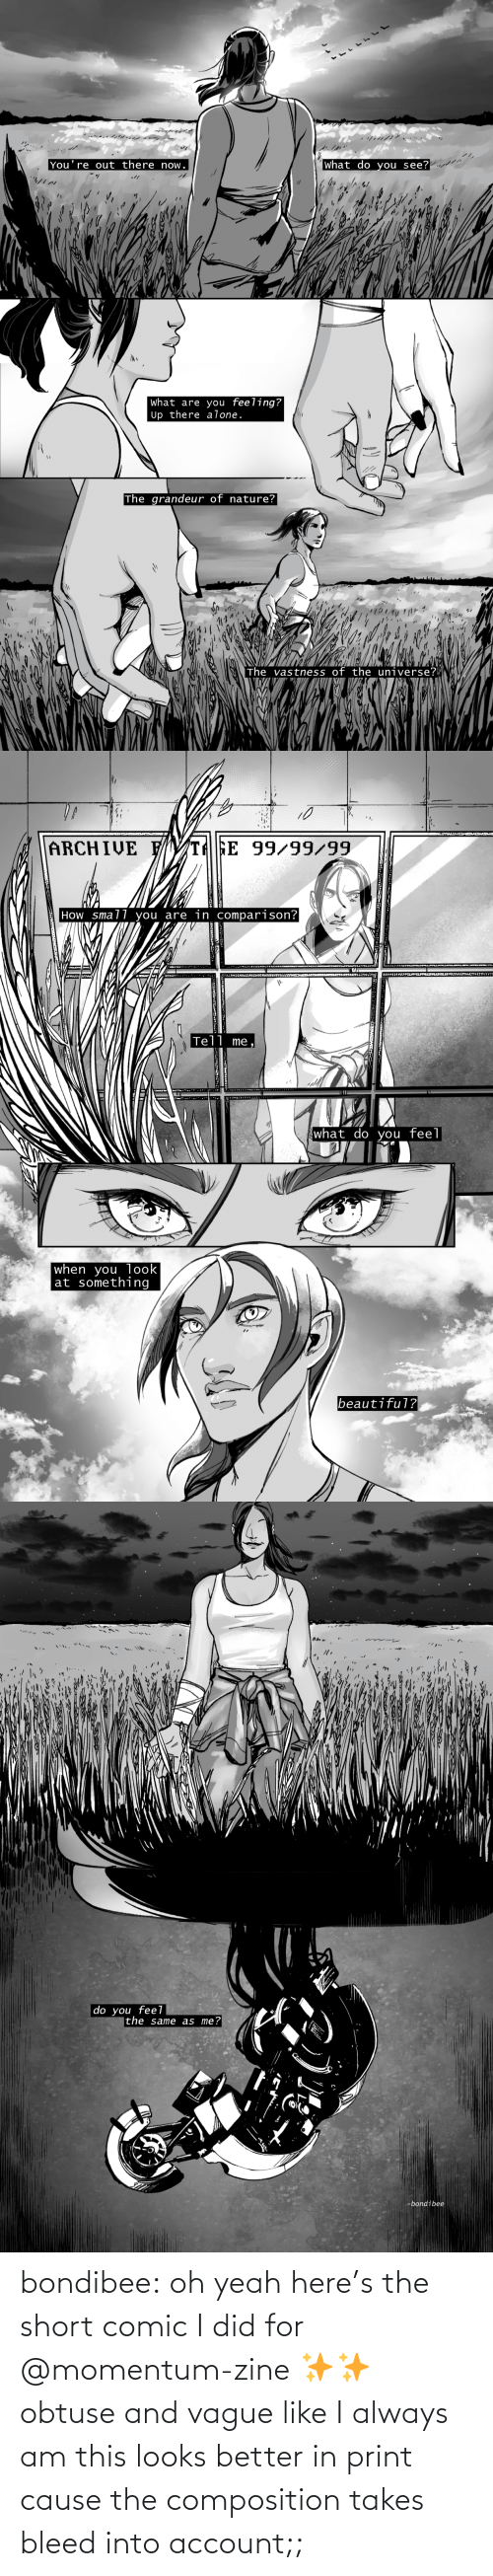 account: bondibee:  oh yeah here's the short comic I did for @momentum-zine ✨✨ obtuse and vague like I always amthis looks better in print cause the composition takes bleed into account;;